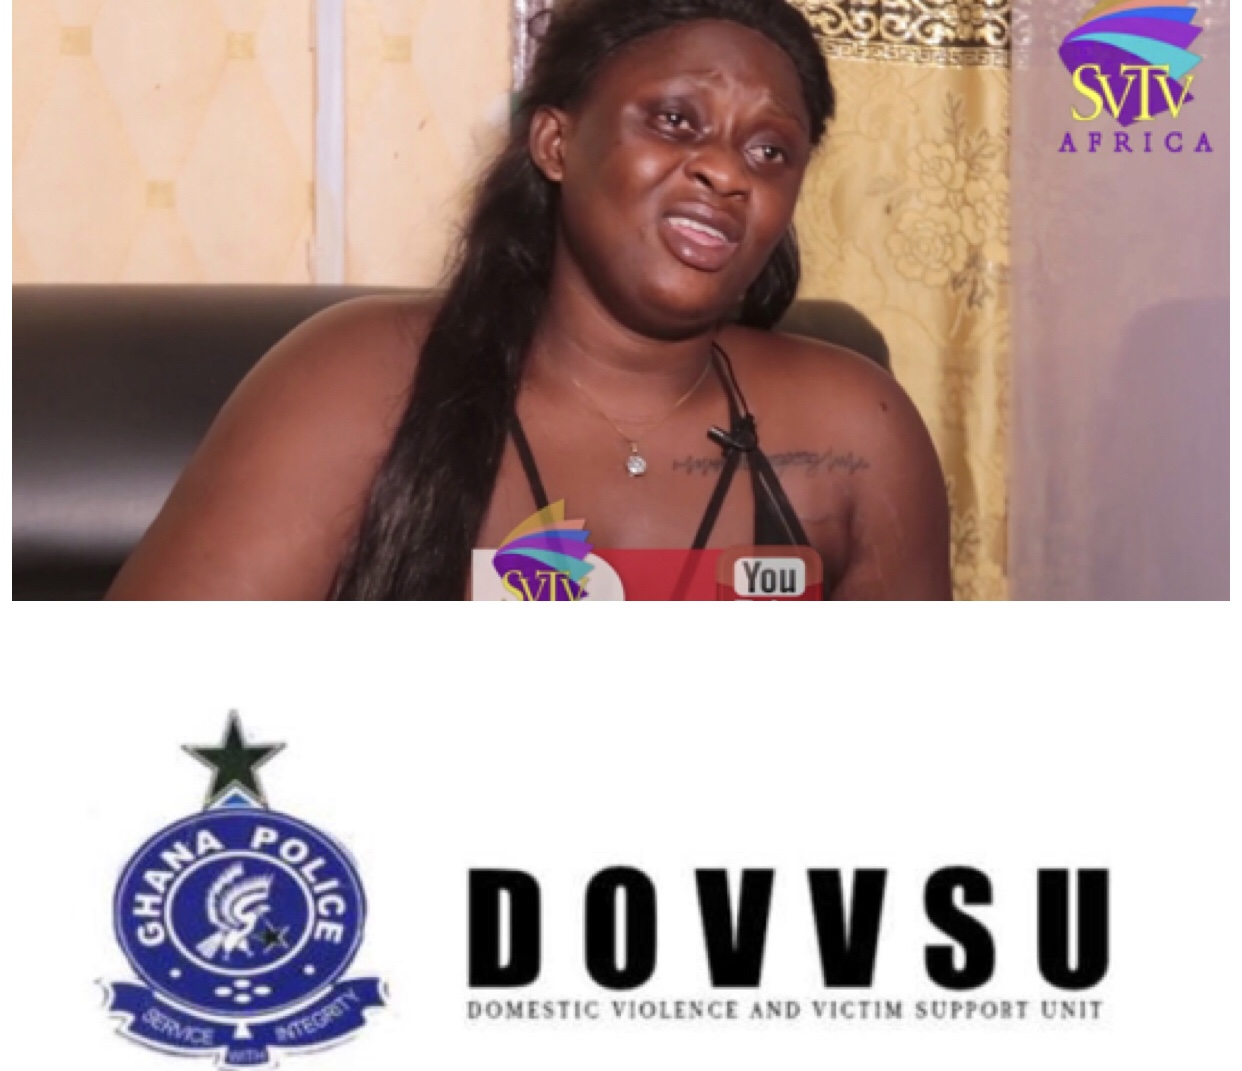 DOVVSU Can not be trusted – Girl Laments